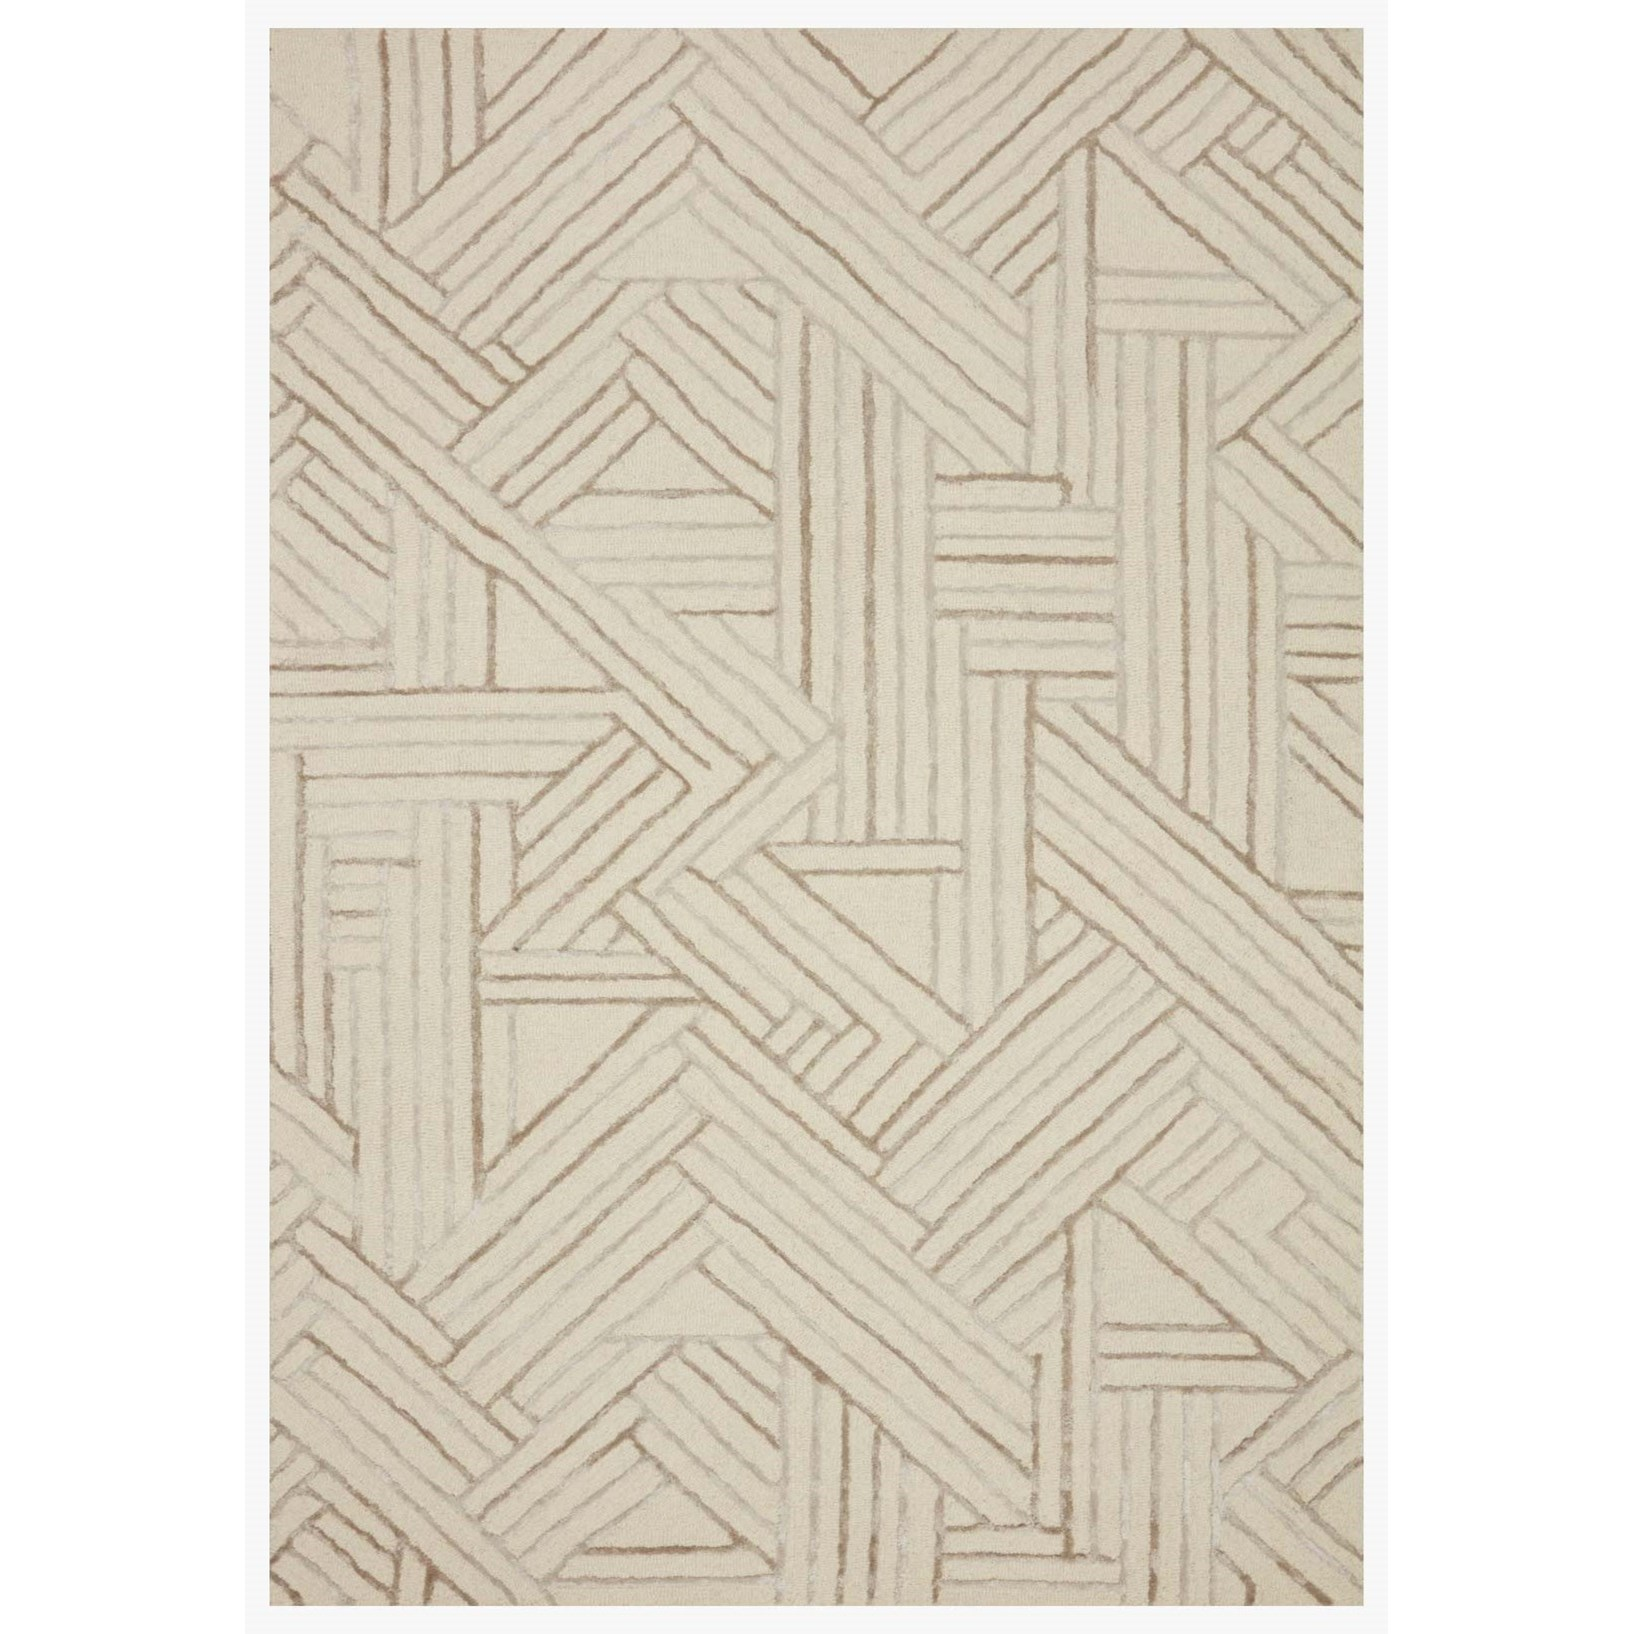 """Verve 2'3"""" x 3'9"""" Ivory / Oatmeal Rug by Loloi Rugs at Virginia Furniture Market"""